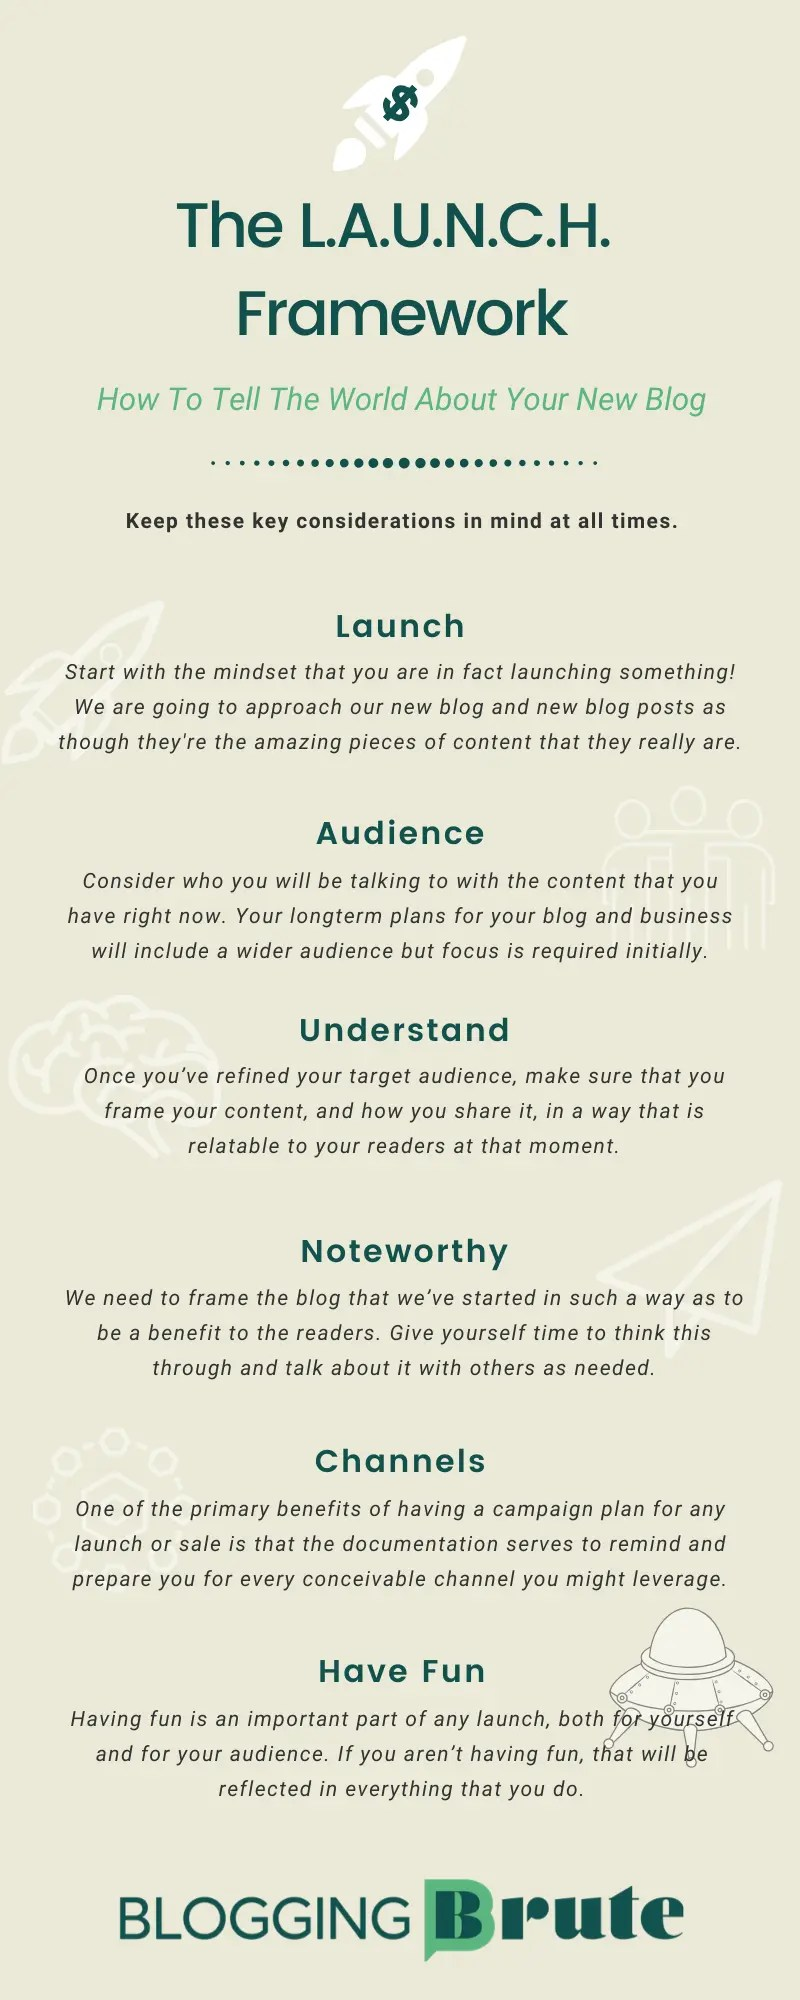 The L.A.U.N.C.H. Framework. How to tell the world about your new blog.